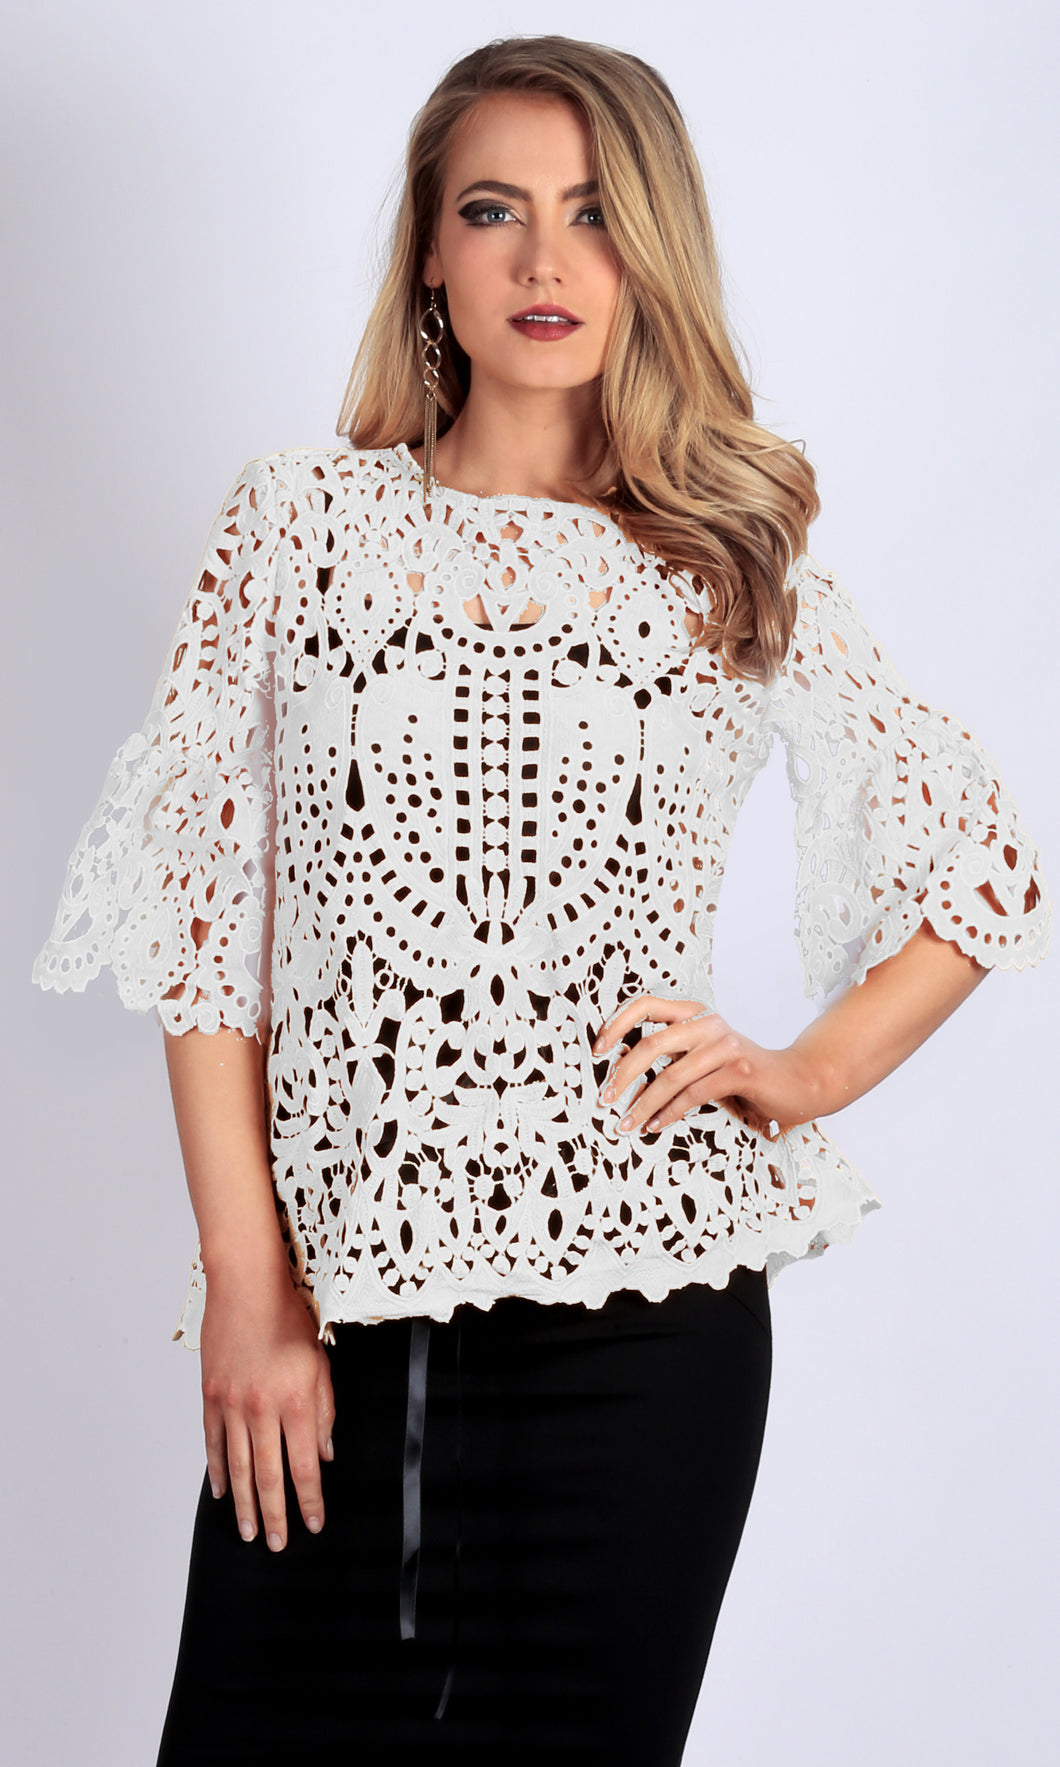 RV0832SS Elegant White Crochet Lace Top (Pack) On Sale